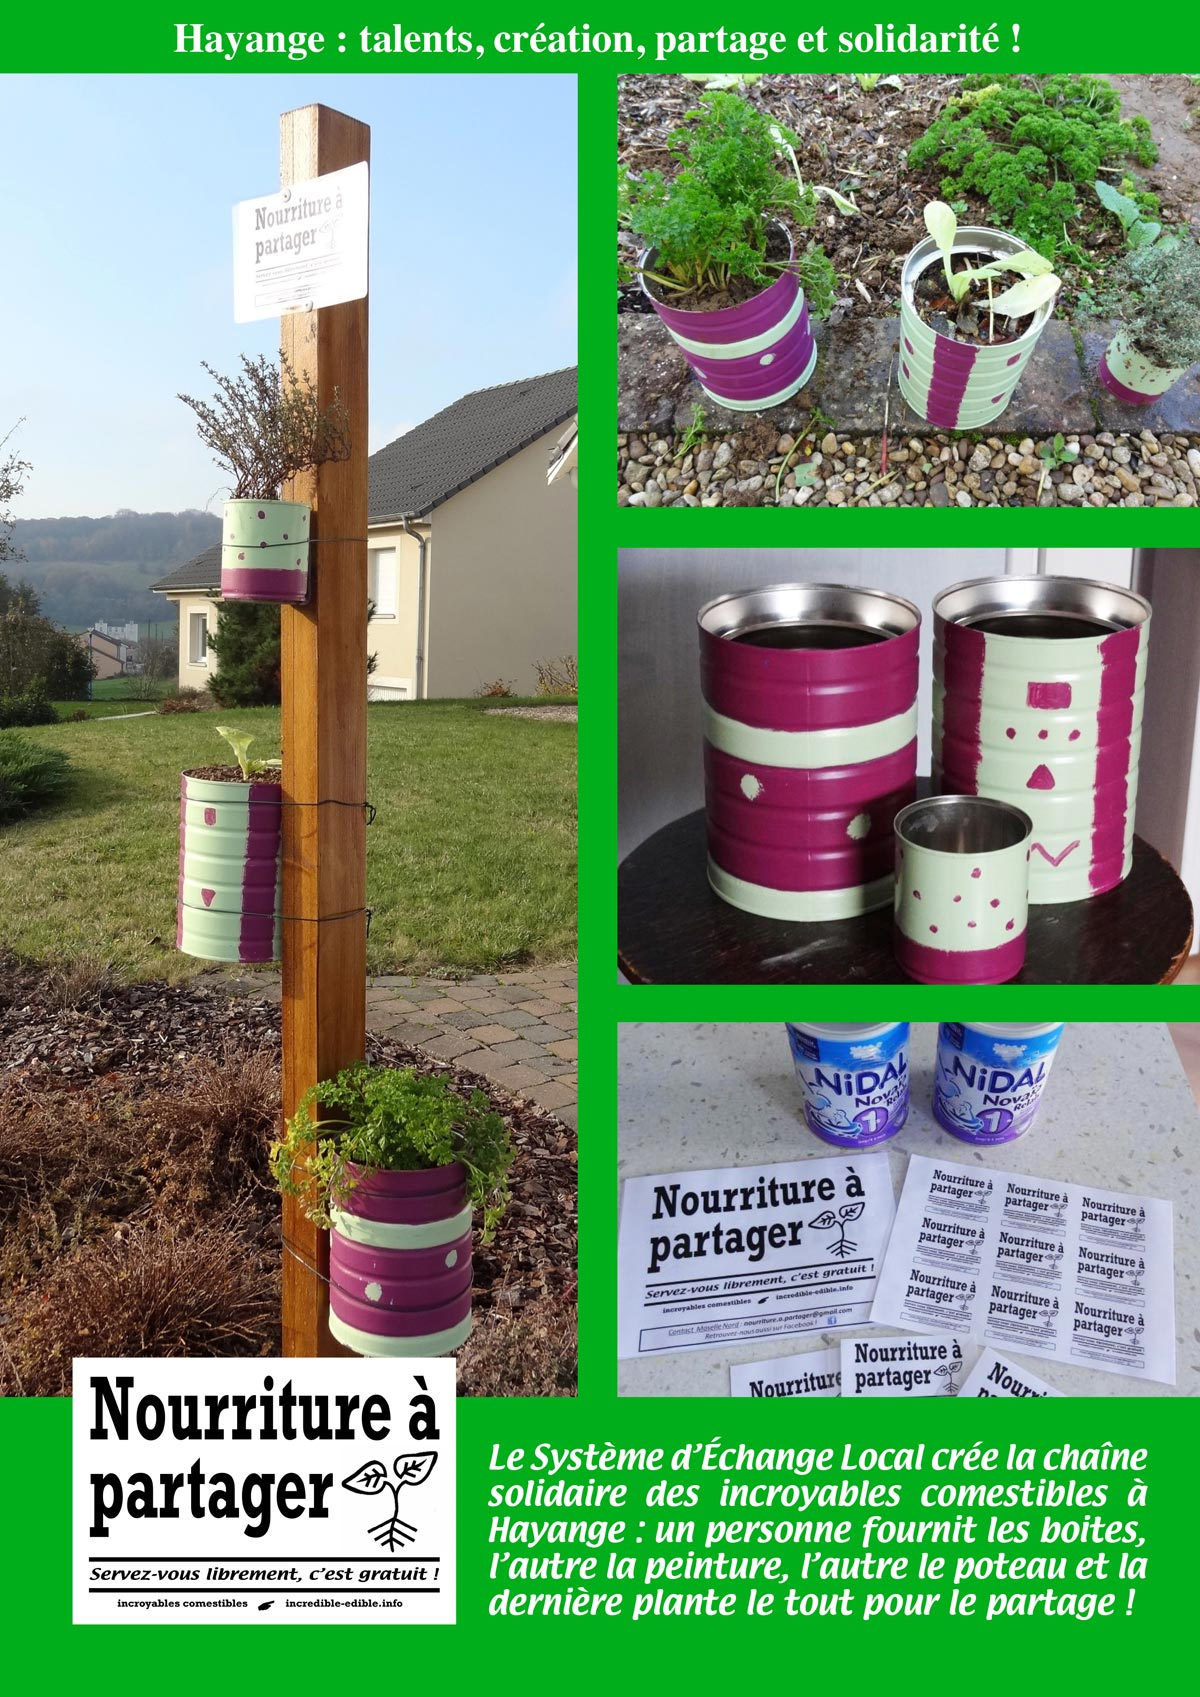 c301_incredible_edible_todmorden_france_lorraine_moselle-nord_hayange_incroyables_comestibles_w1200